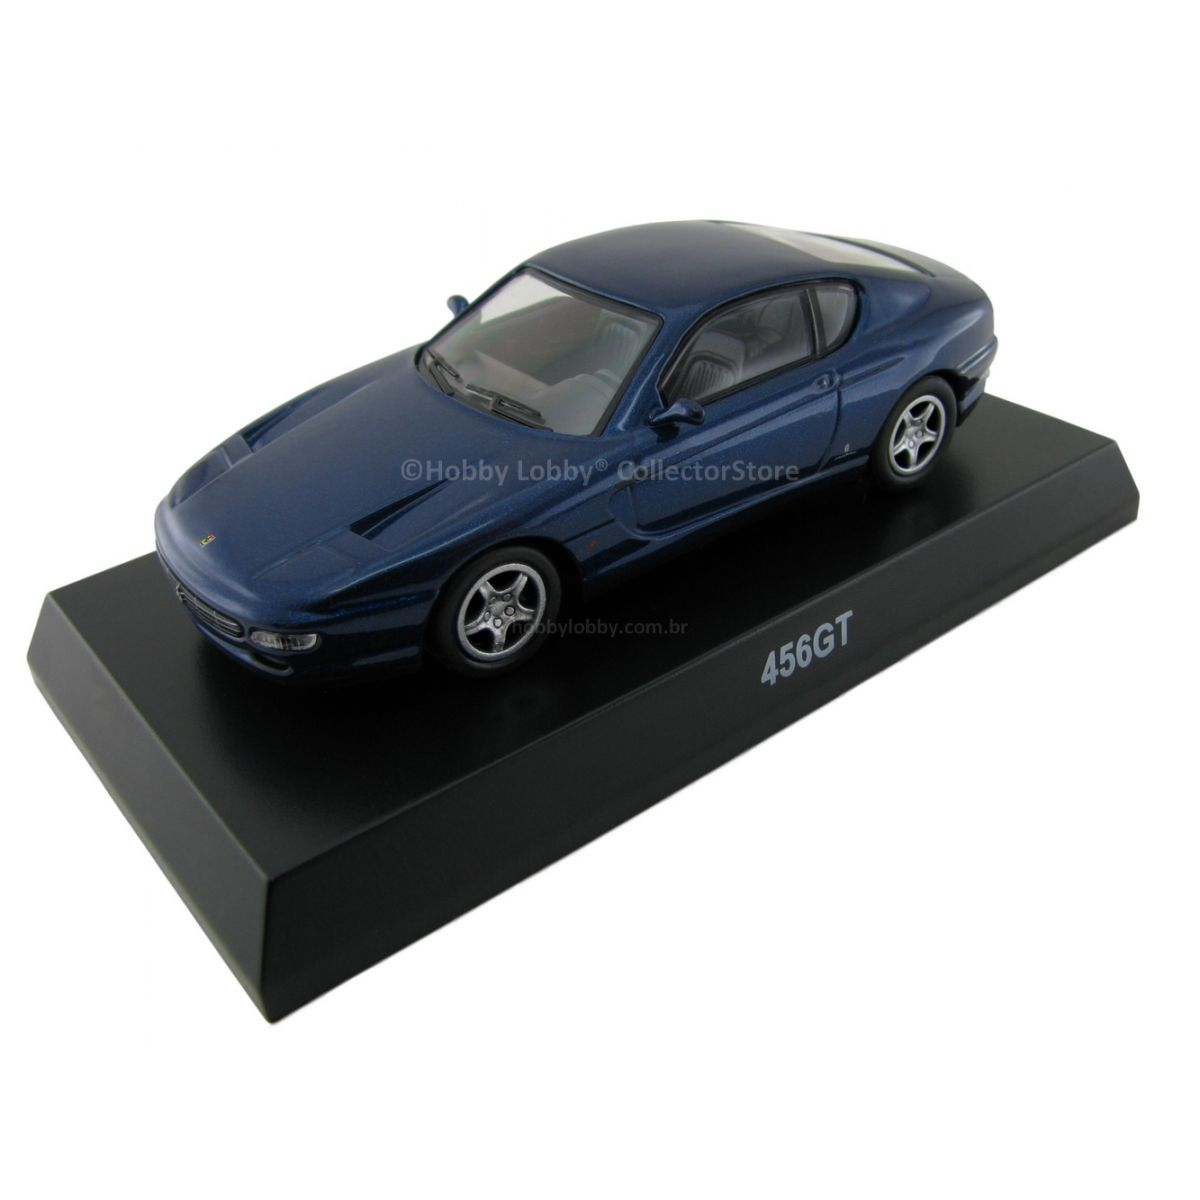 Kyosho - Ferrari Minicar Collection VI - Ferrari 456 GT [azul]